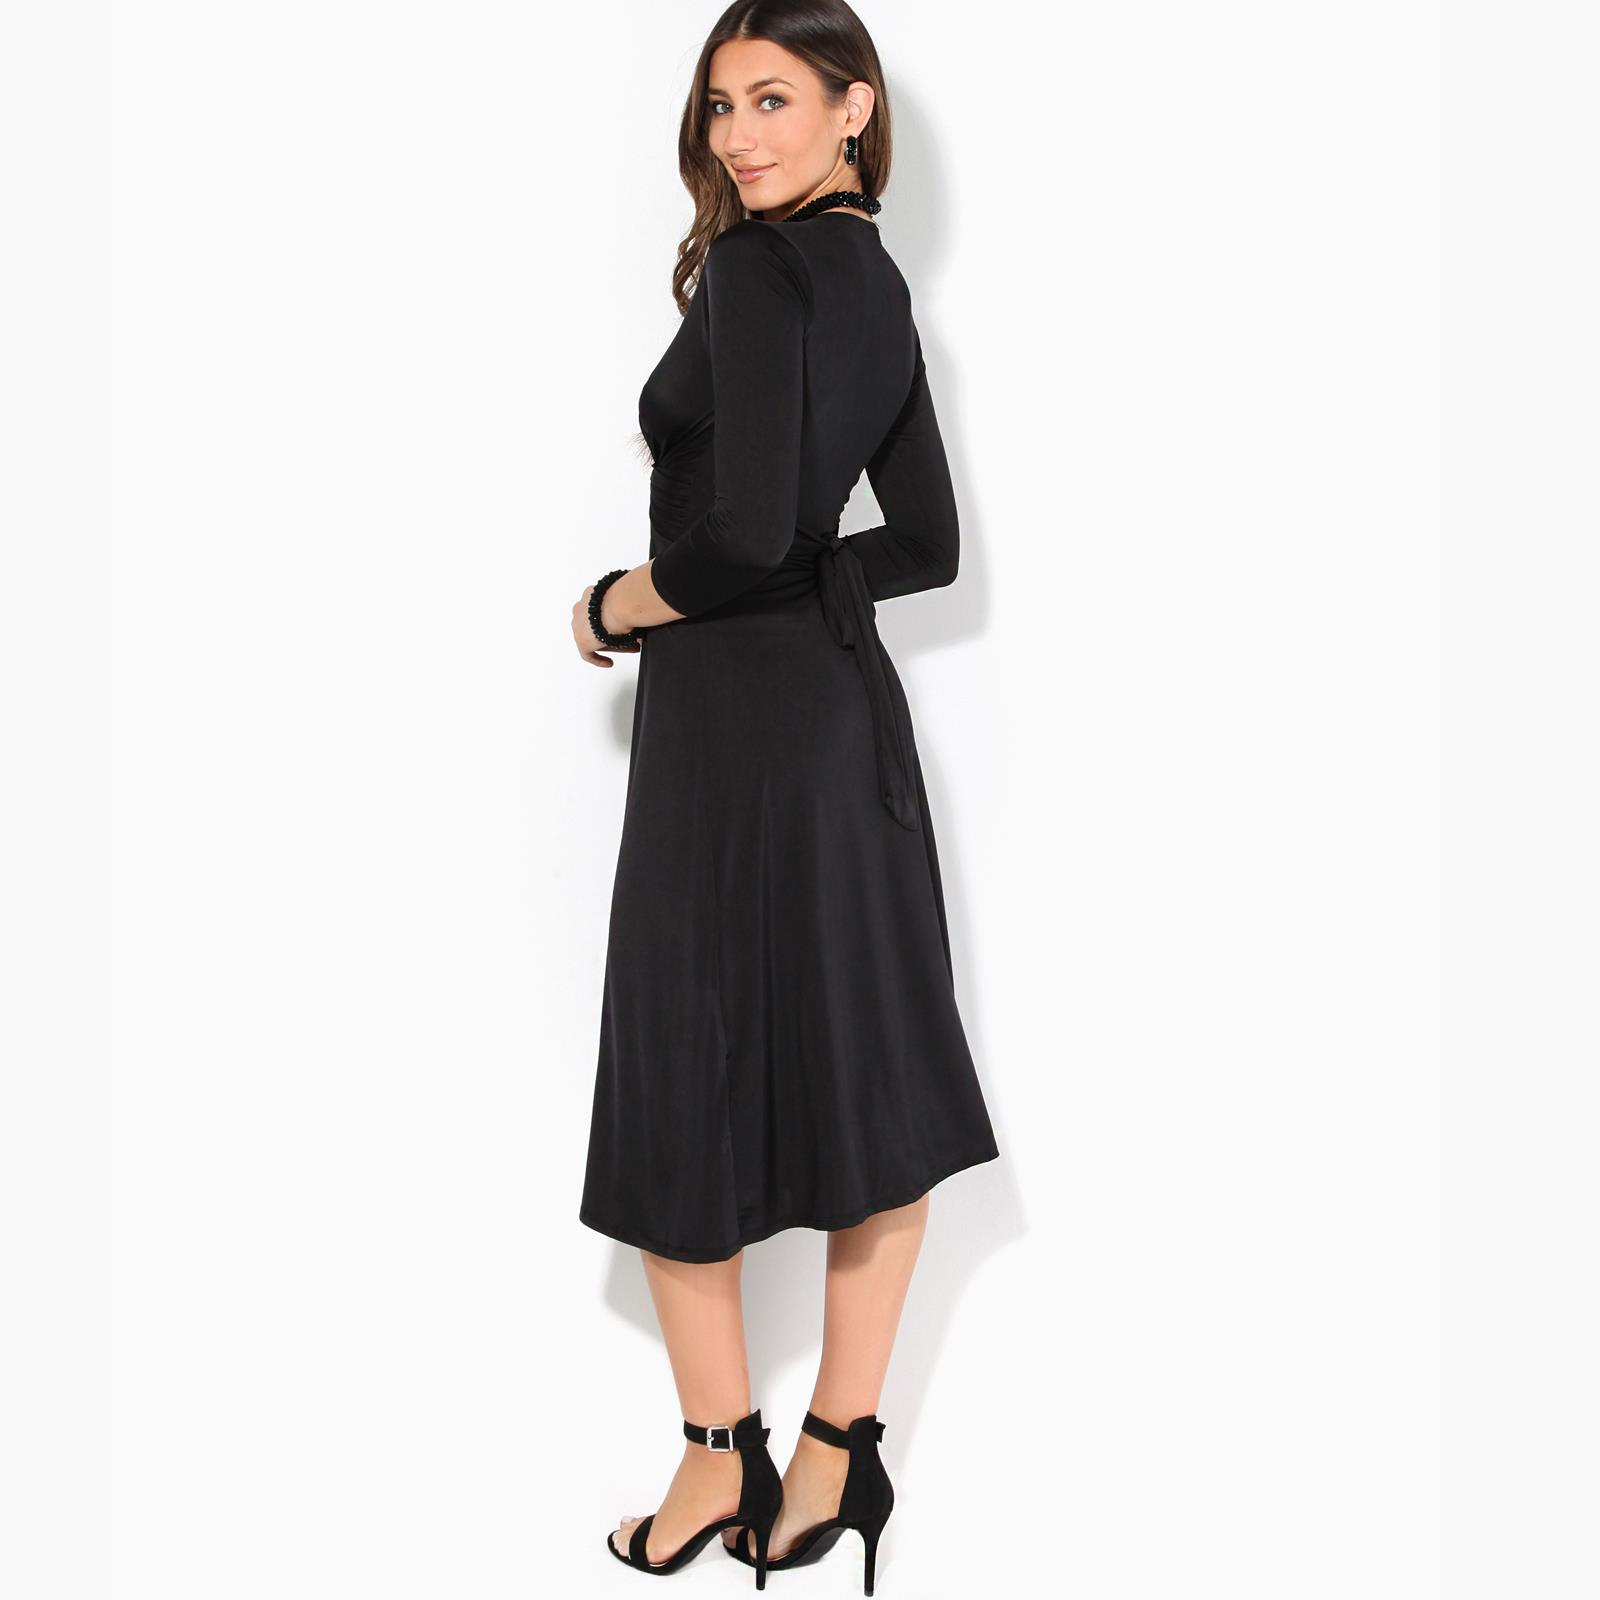 Women-Ladies-V-Neck-Midi-Dress-Knee-Long-A-Line-Skirt-3-4-Sleeve-Knot-Party-Work thumbnail 4